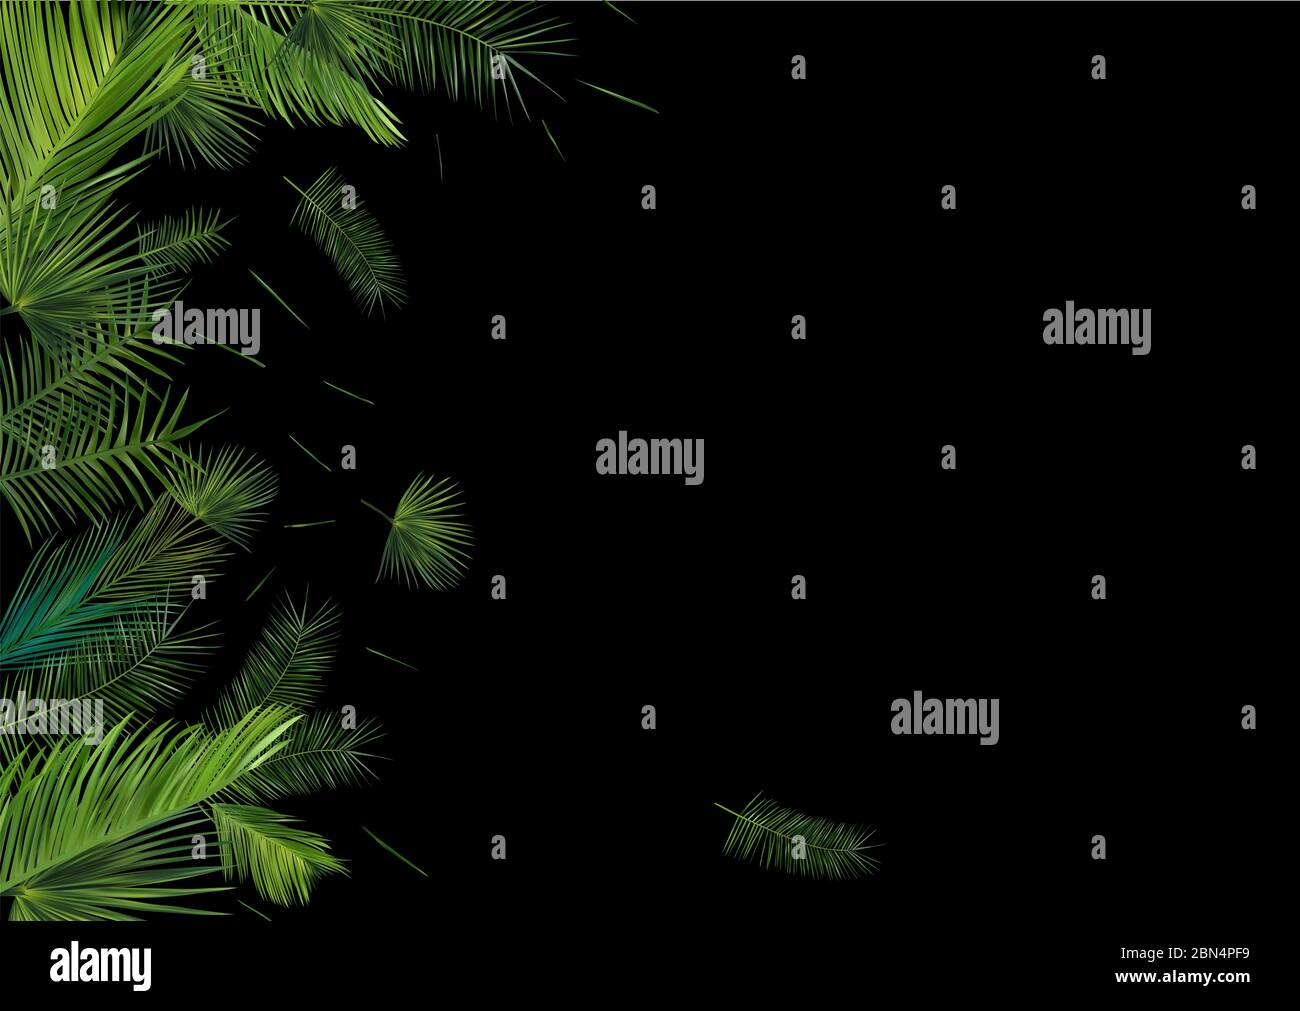 Collection Tropical Palm Leaf On Dark Background Beautiful Banner Exotic Botanical Design Different Palm Palm Leaves Realistic Leaves With Copy Space For Your Text 3d Illustration Stock Photo Alamy